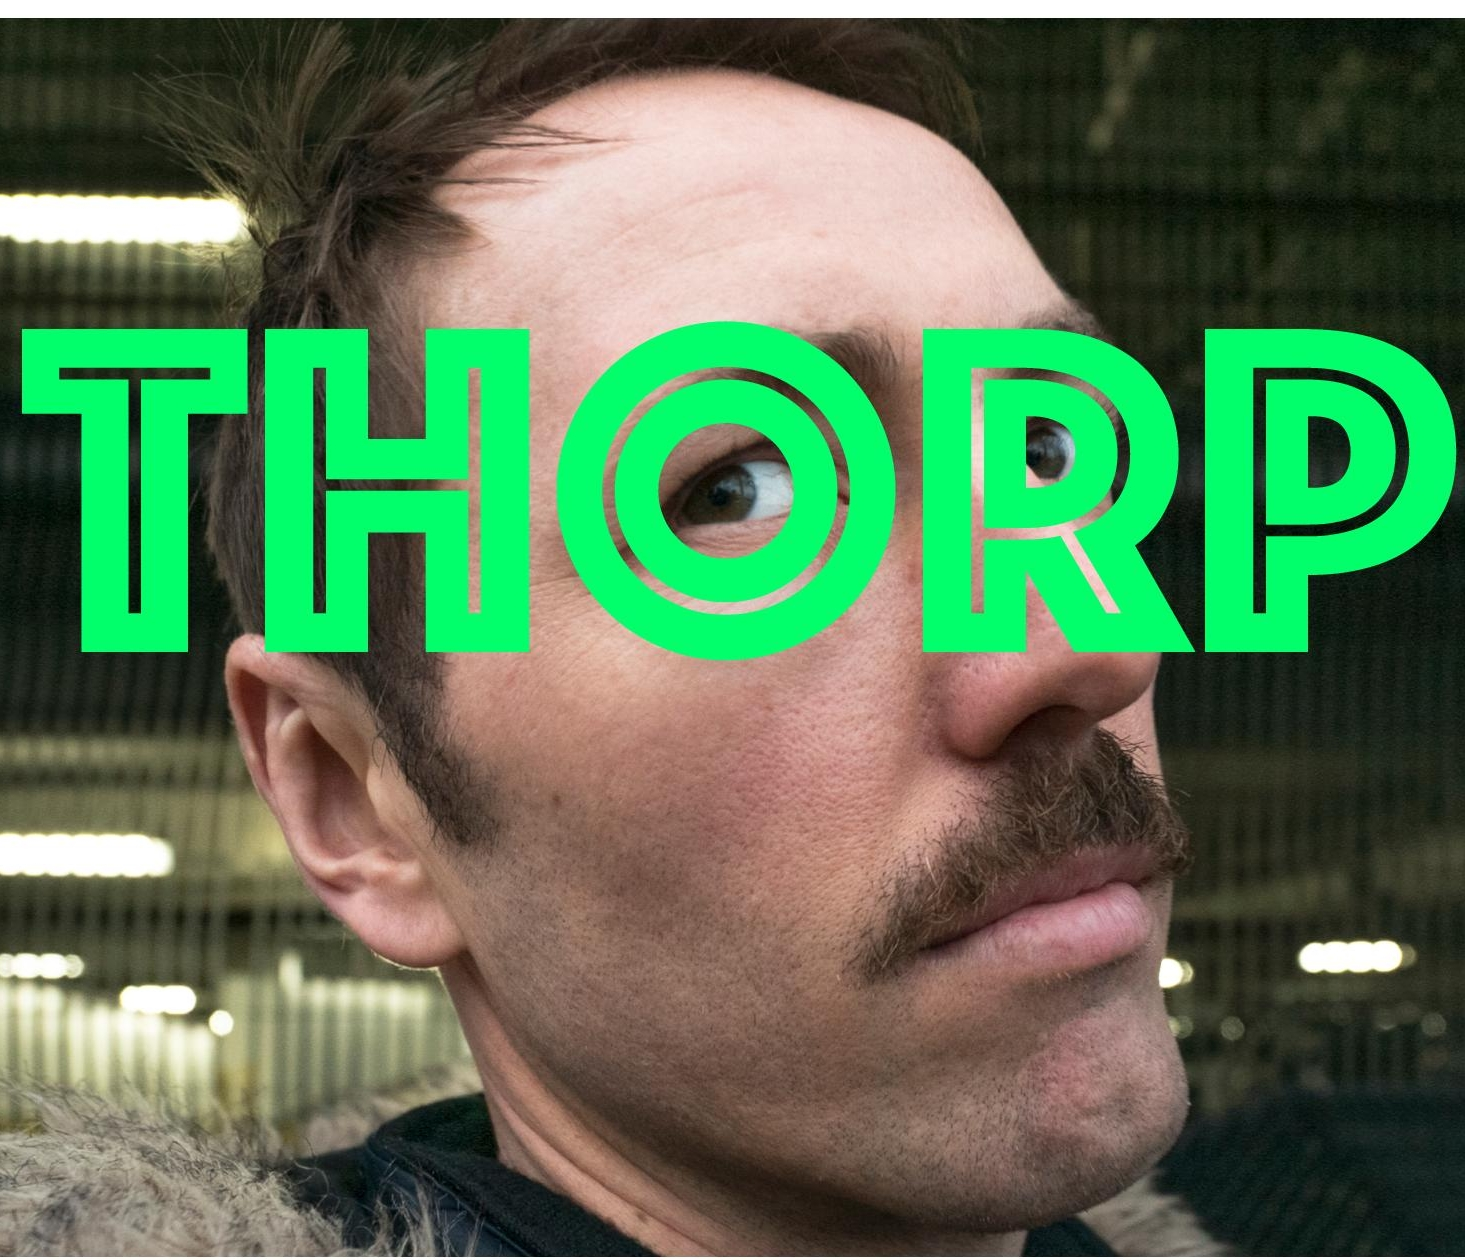 THORP COVER-page-001.jpg